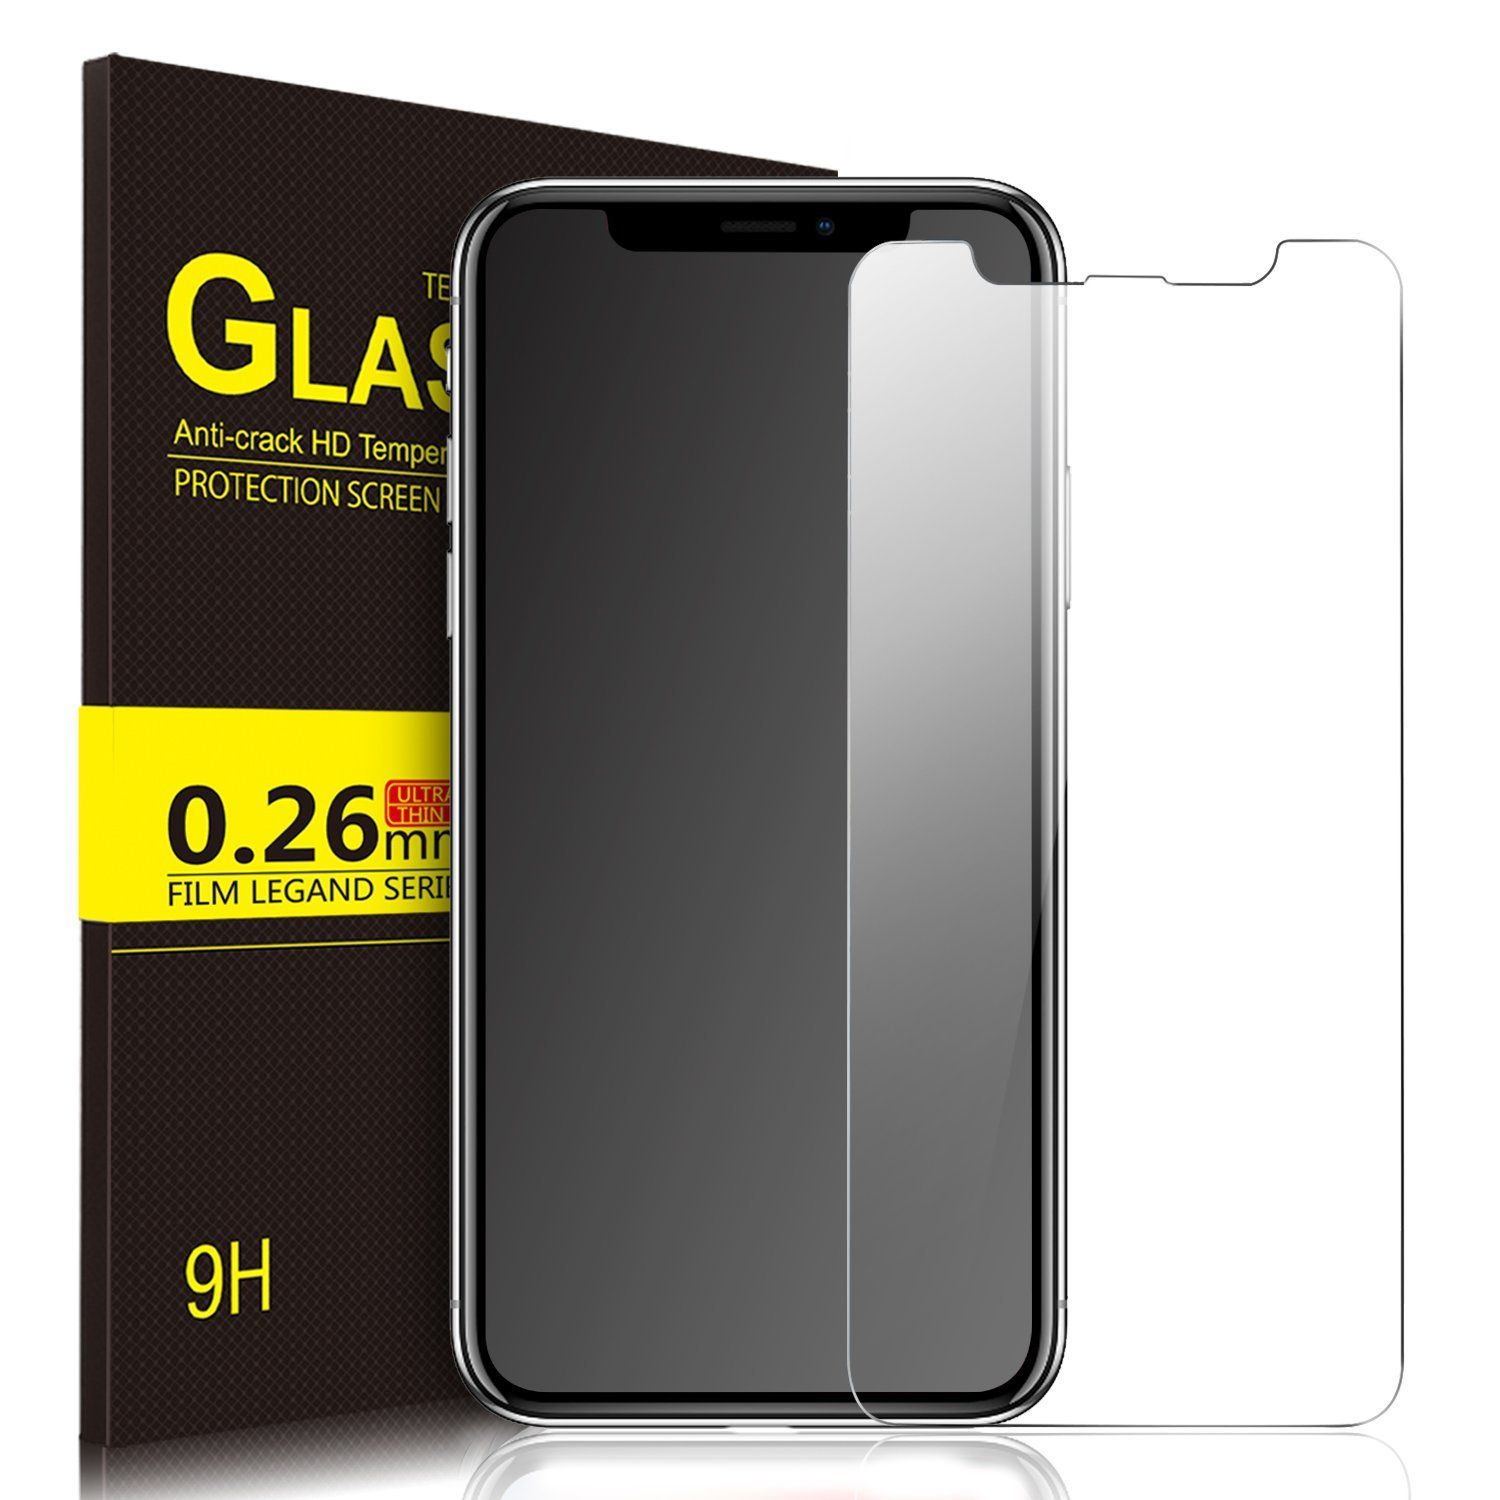 reputable site e933e dccf9 IVSO iPhone X Tempered-Glass Screen Protector, [Crystal Clearity ...